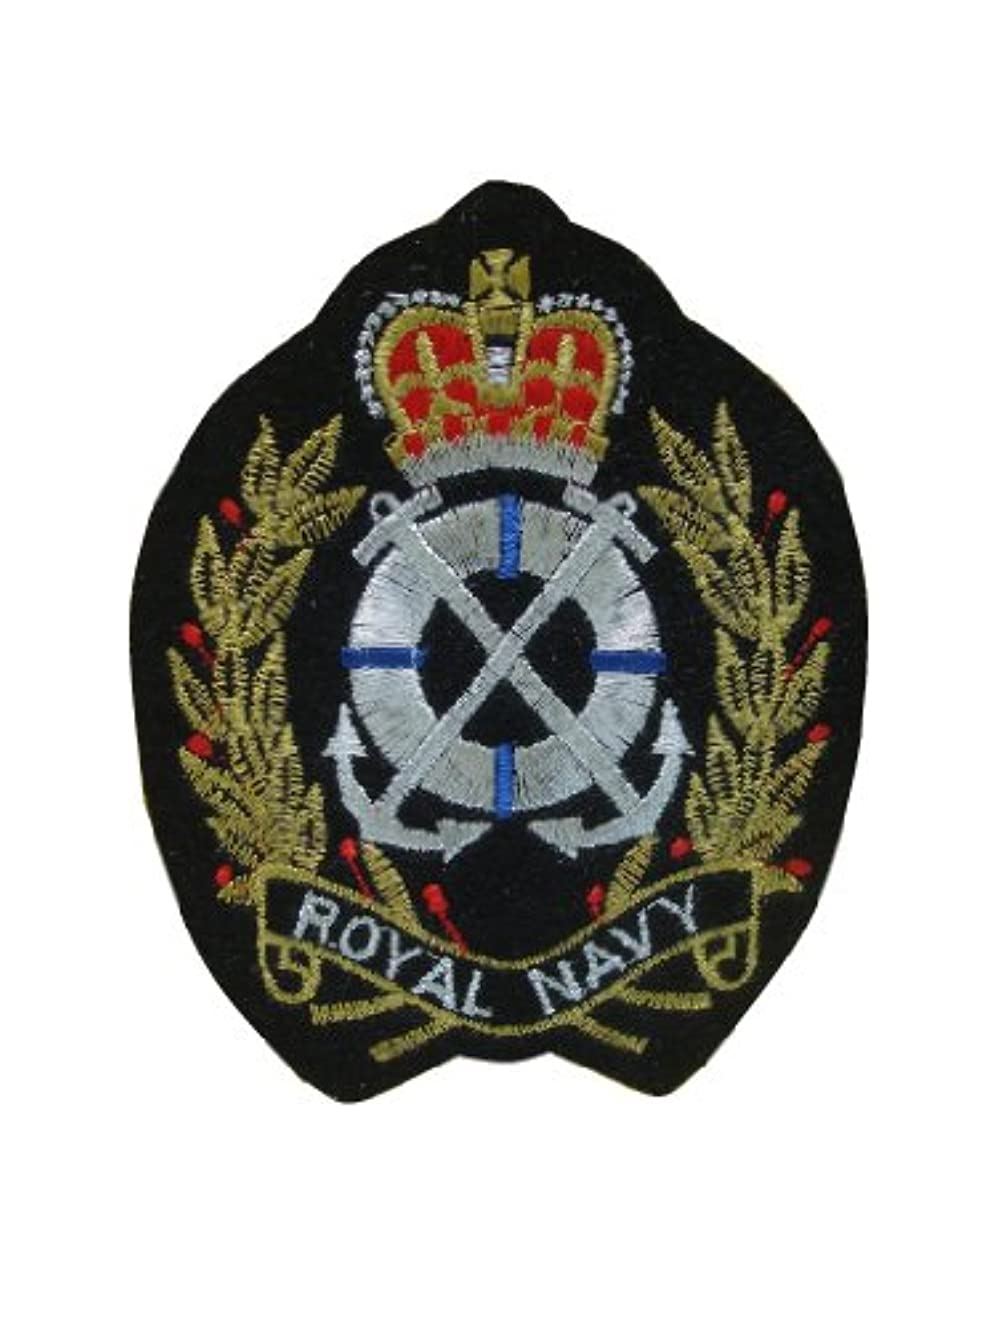 ROYAL NAVY CREST EMBLEM Iron On Patch Embroidered Nautical Motif Biker Applique Heraldic Insignia Badge Decal 3.8 x 3 inches (9.5 x 7.5 cm)